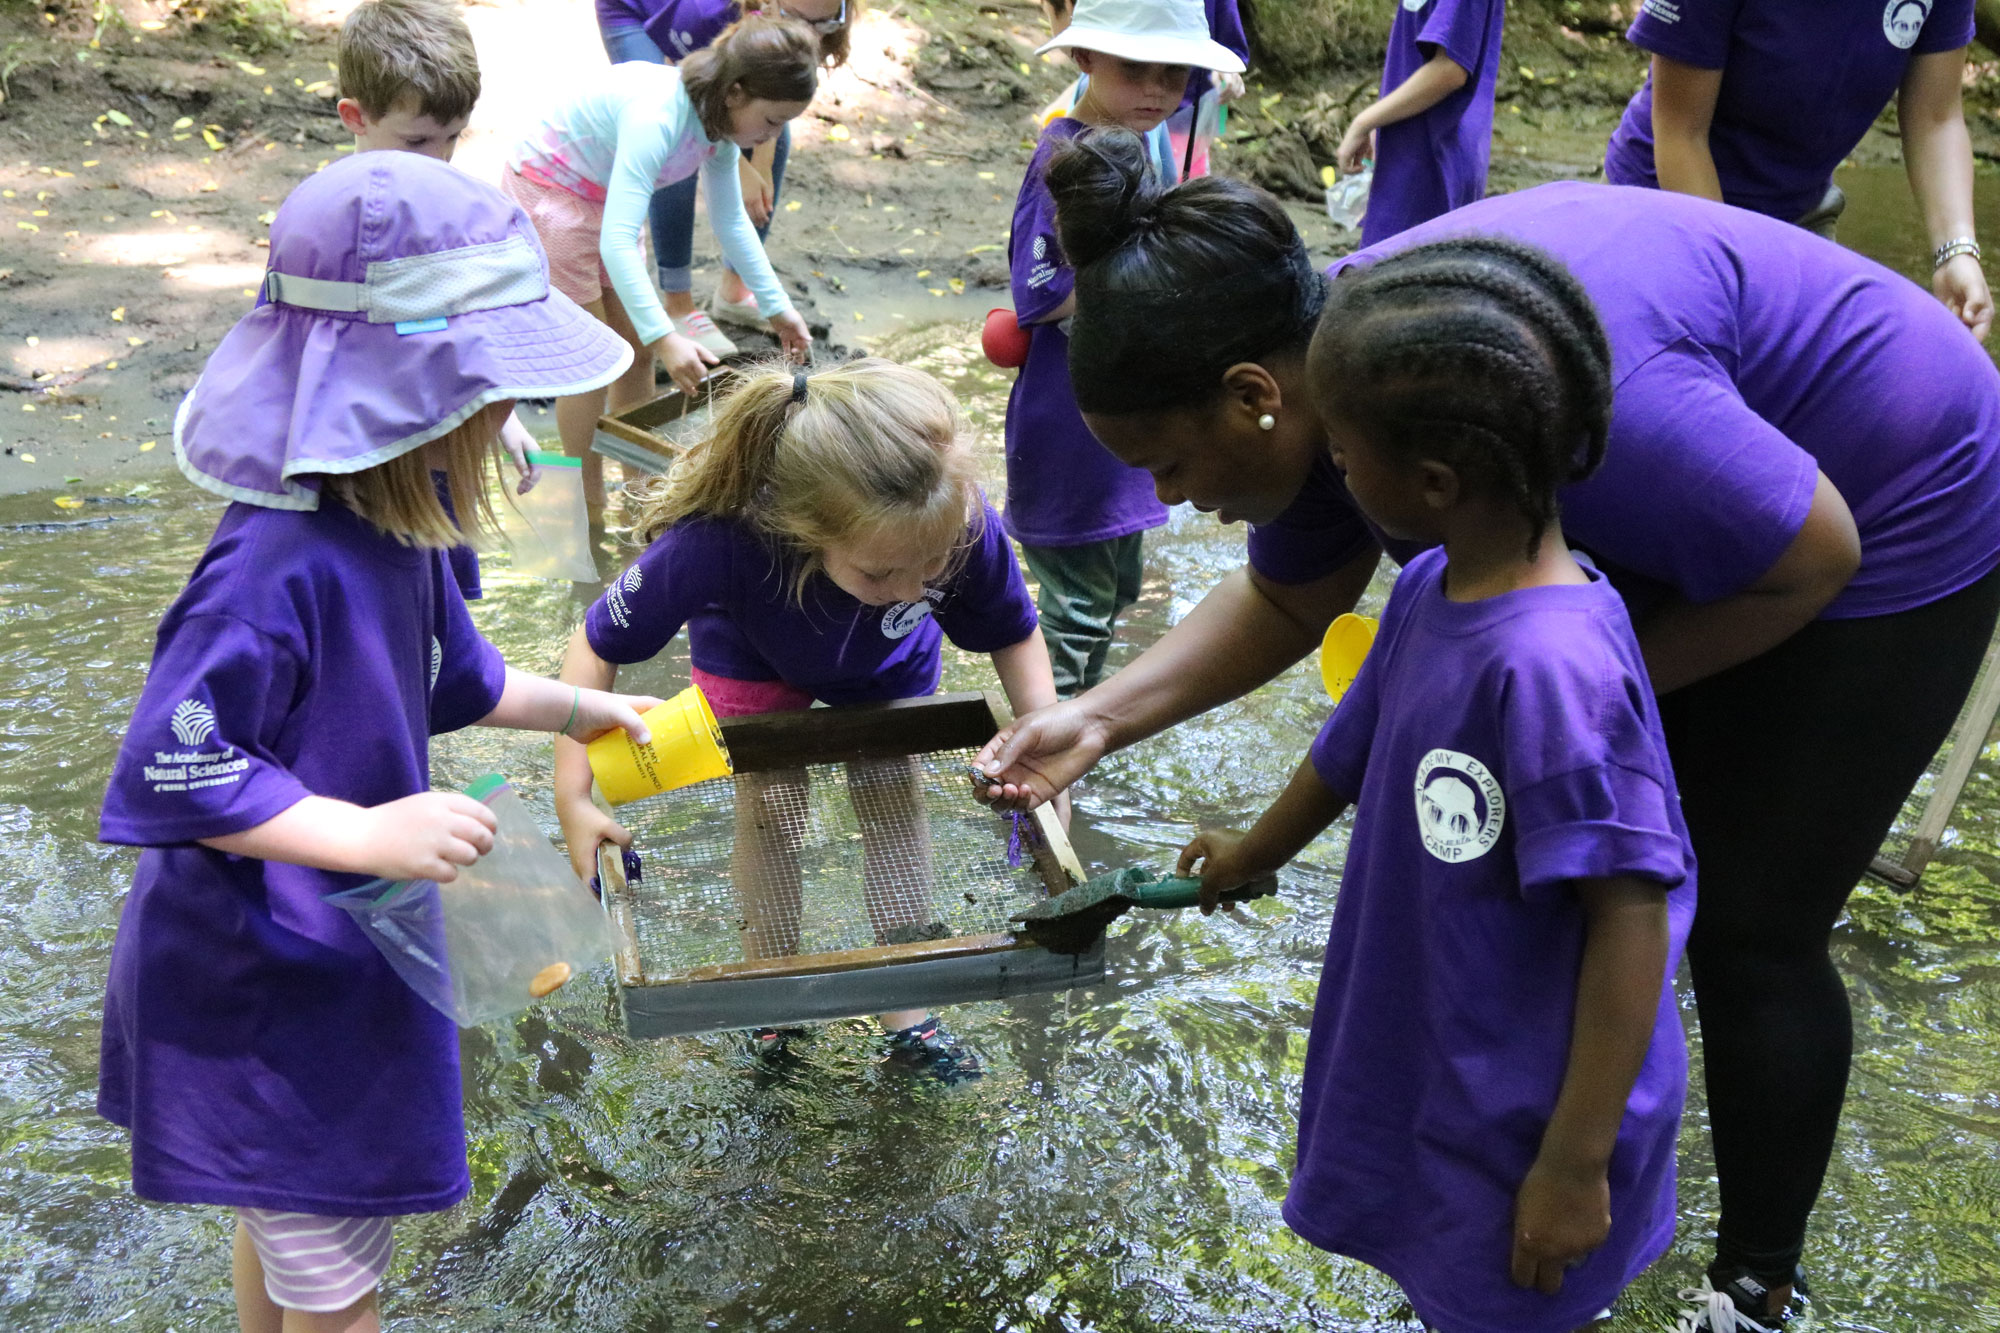 Academy of Natural Sciences summer campers search for fossils in a stream.